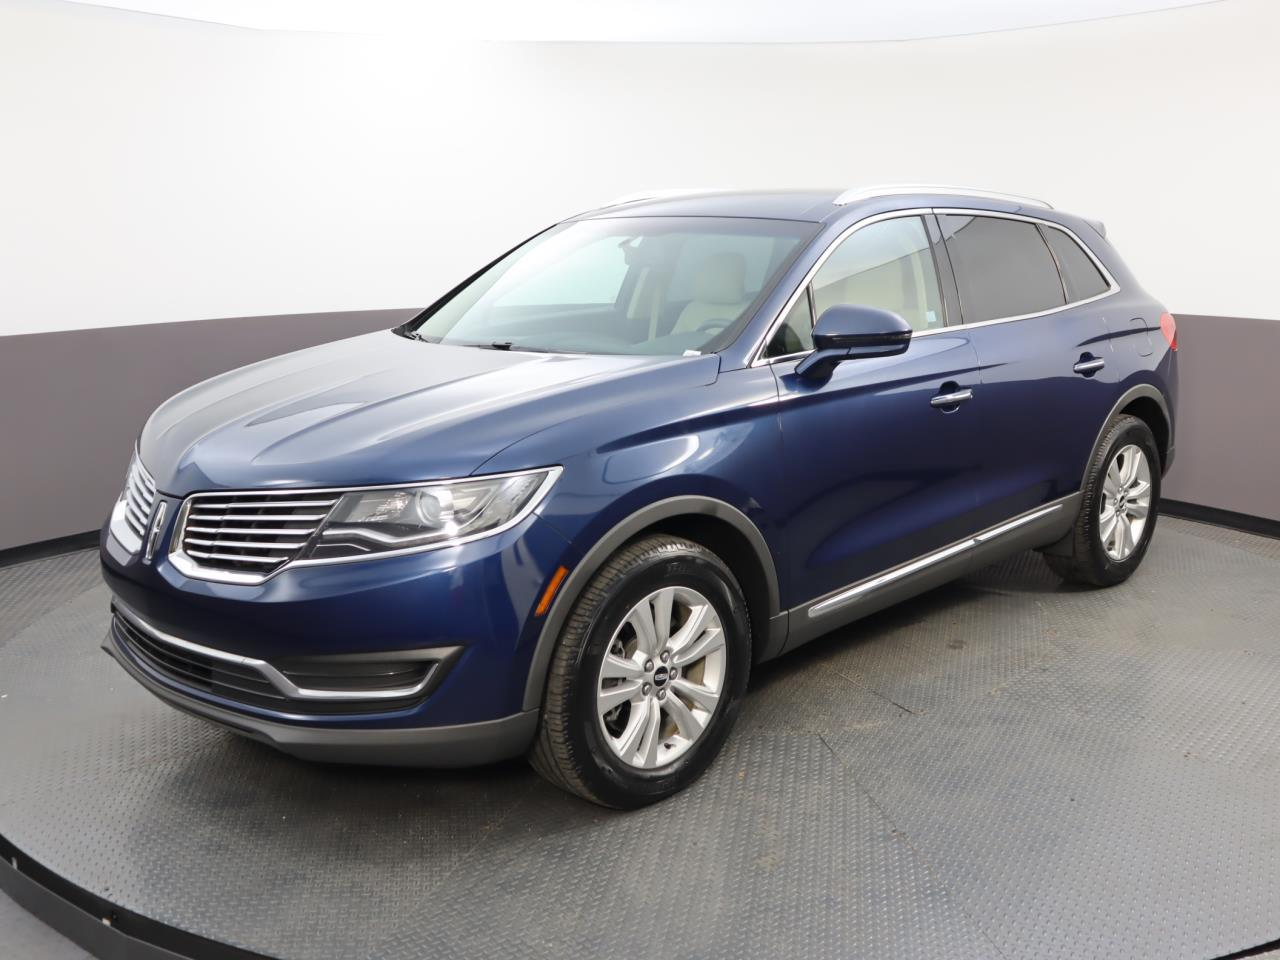 Used LINCOLN MKX 2017 MARGATE PREMIERE